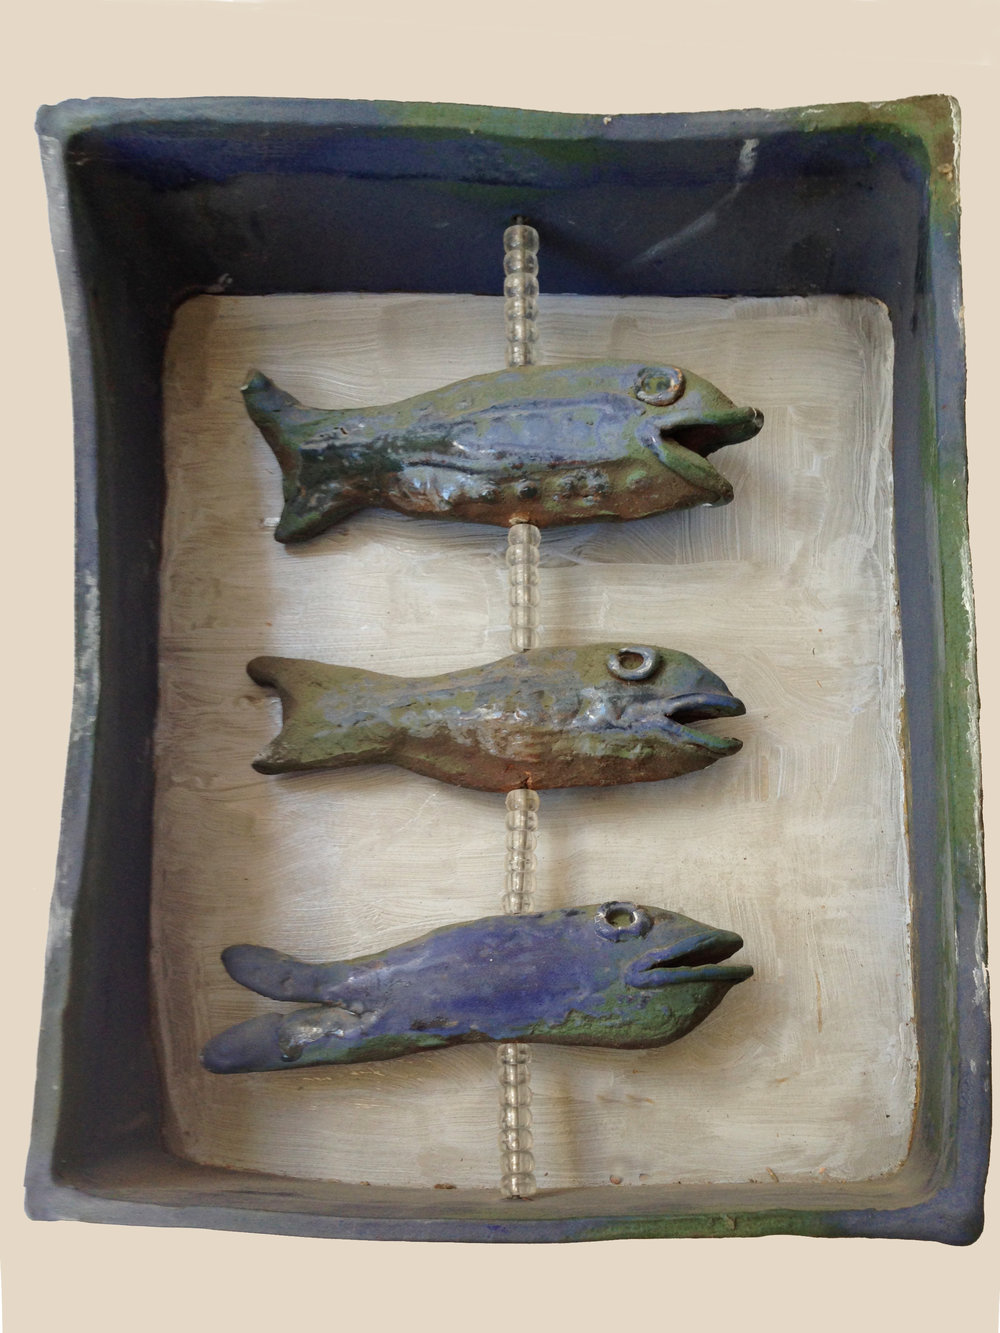 "2. Mary Ann BowmanThree Fish  Glazed stoneware 12"" x 8"" x 3.5"" Retail value $275"